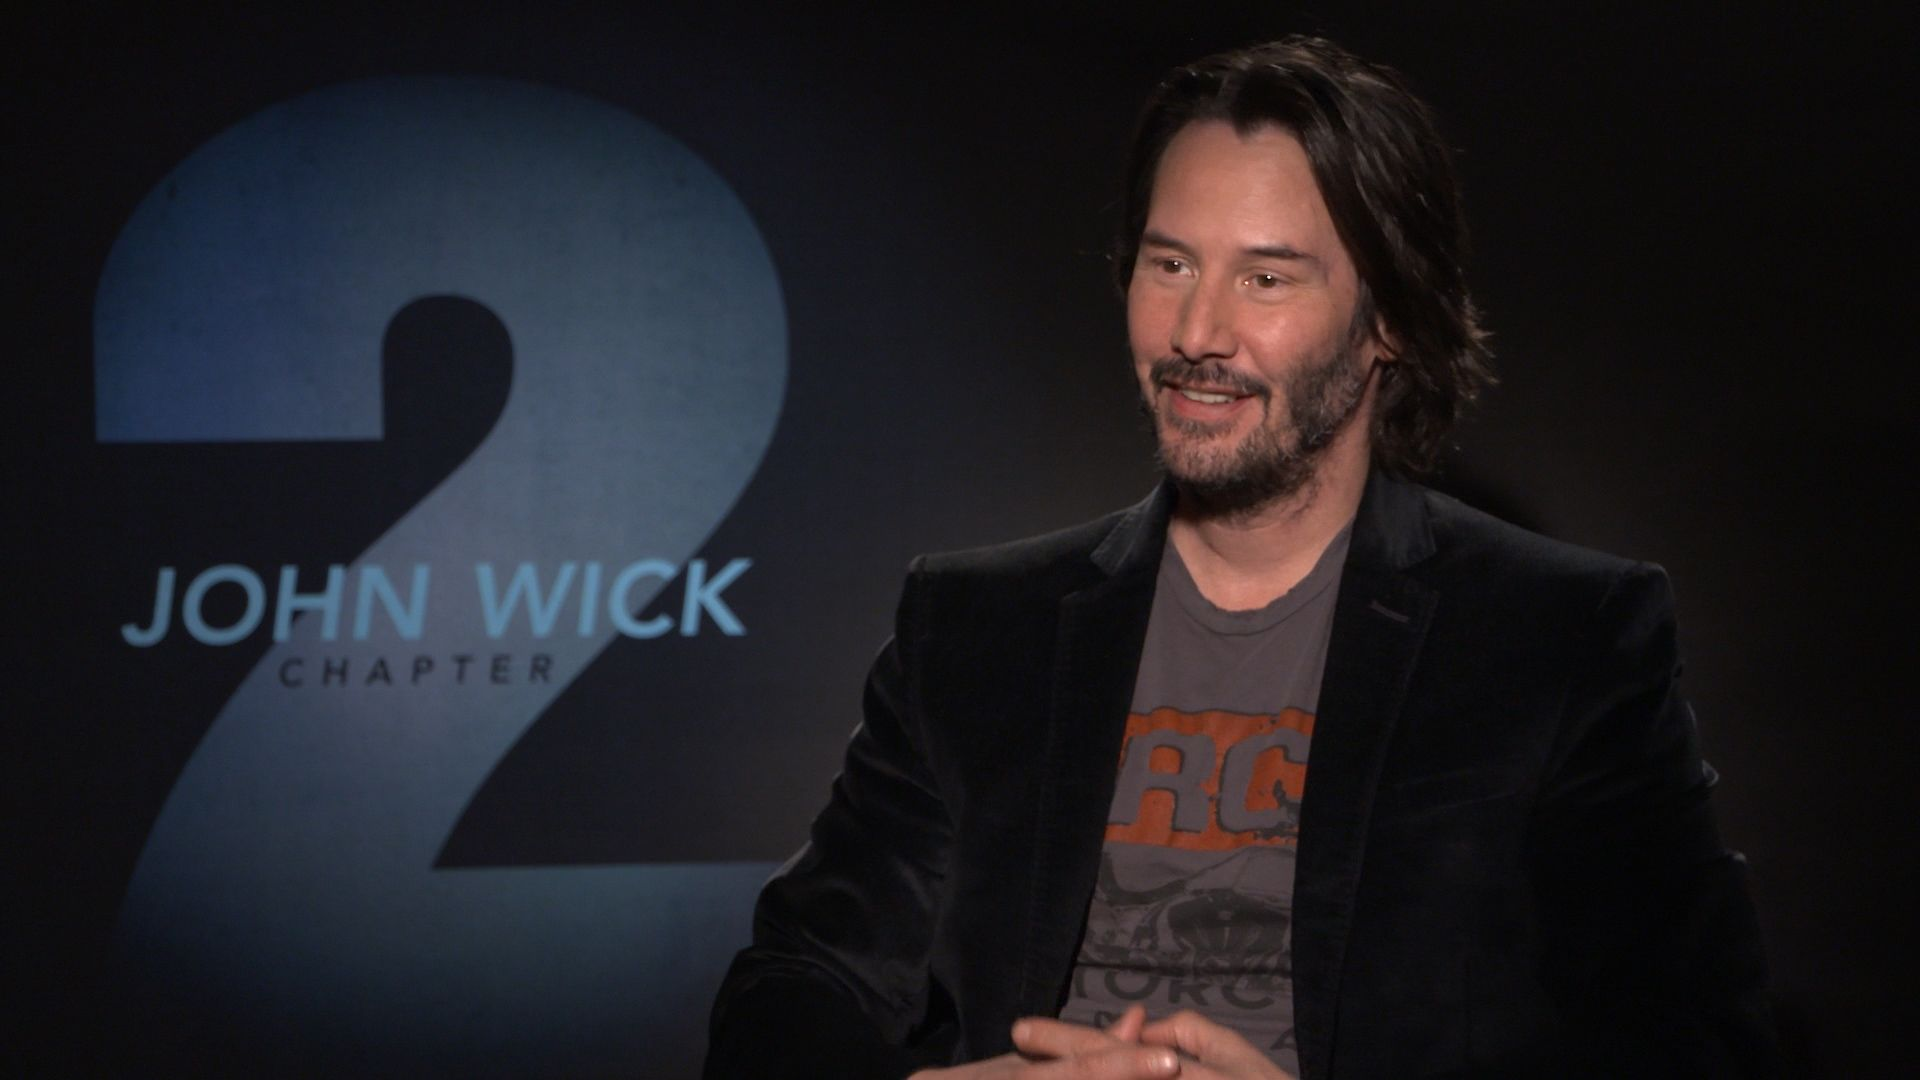 john-wick-2-keanu-reeves-interview